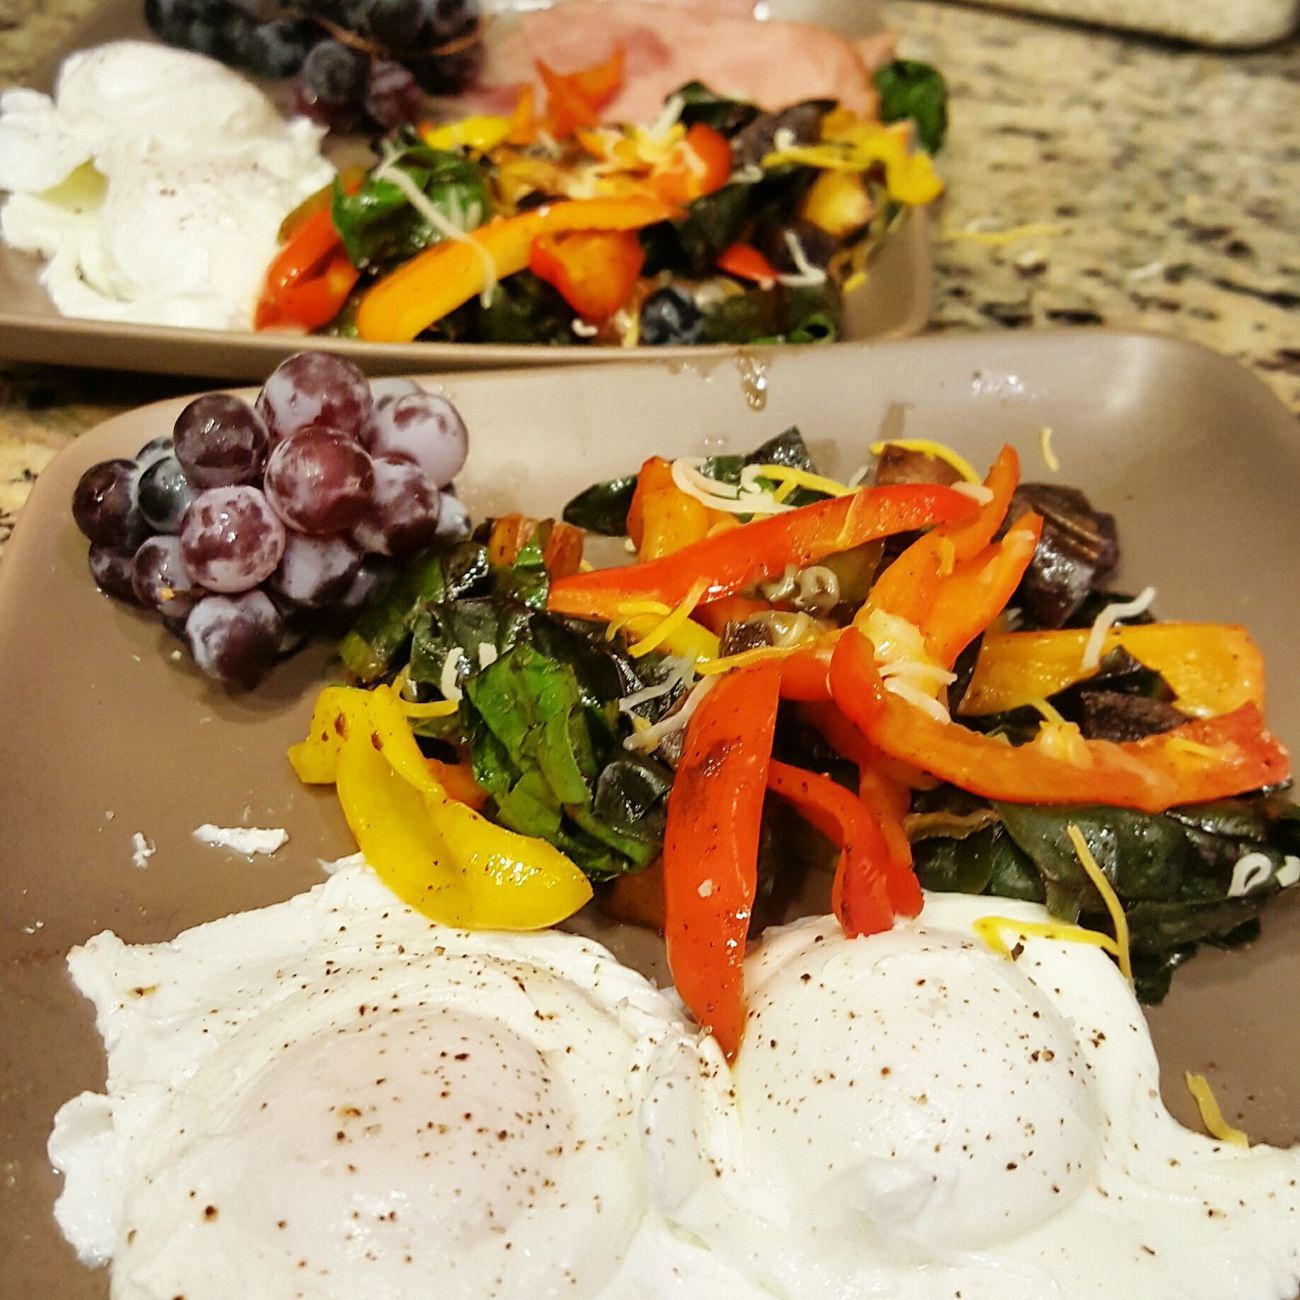 Onthetable Poachedeggs Sauteed Veggies Breakfast For The Love Of Food